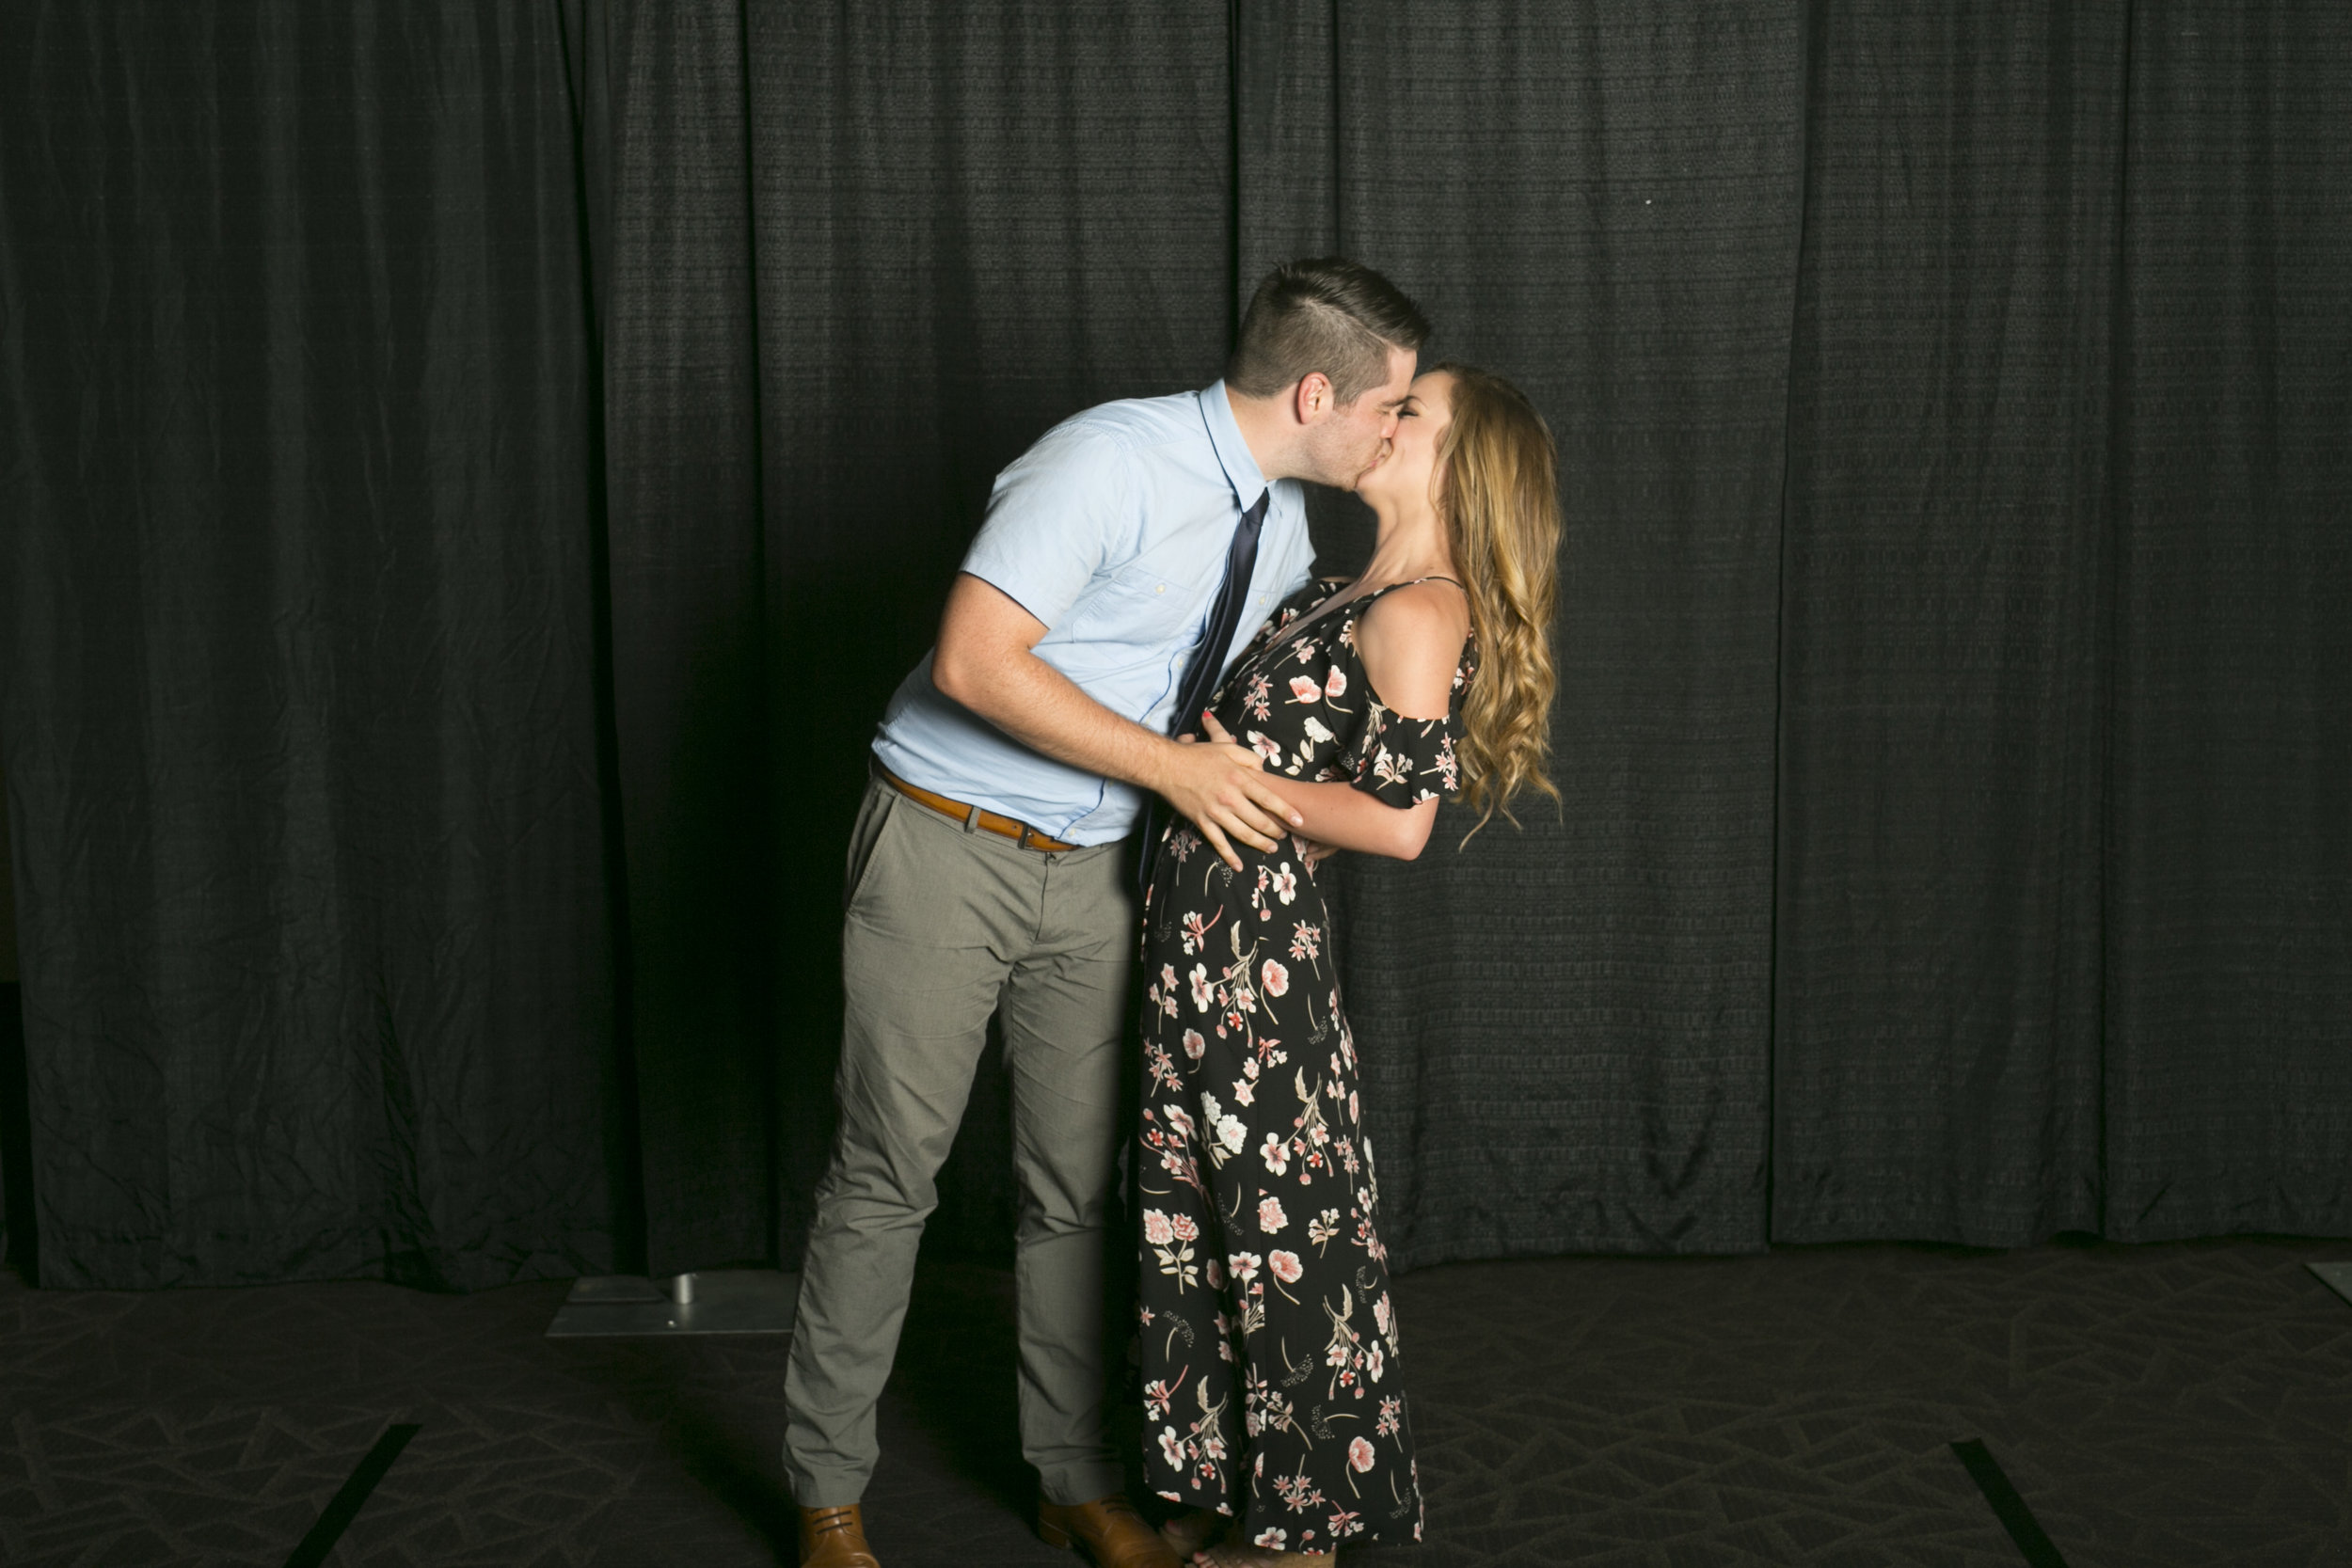 wedding photo booth-27.jpg